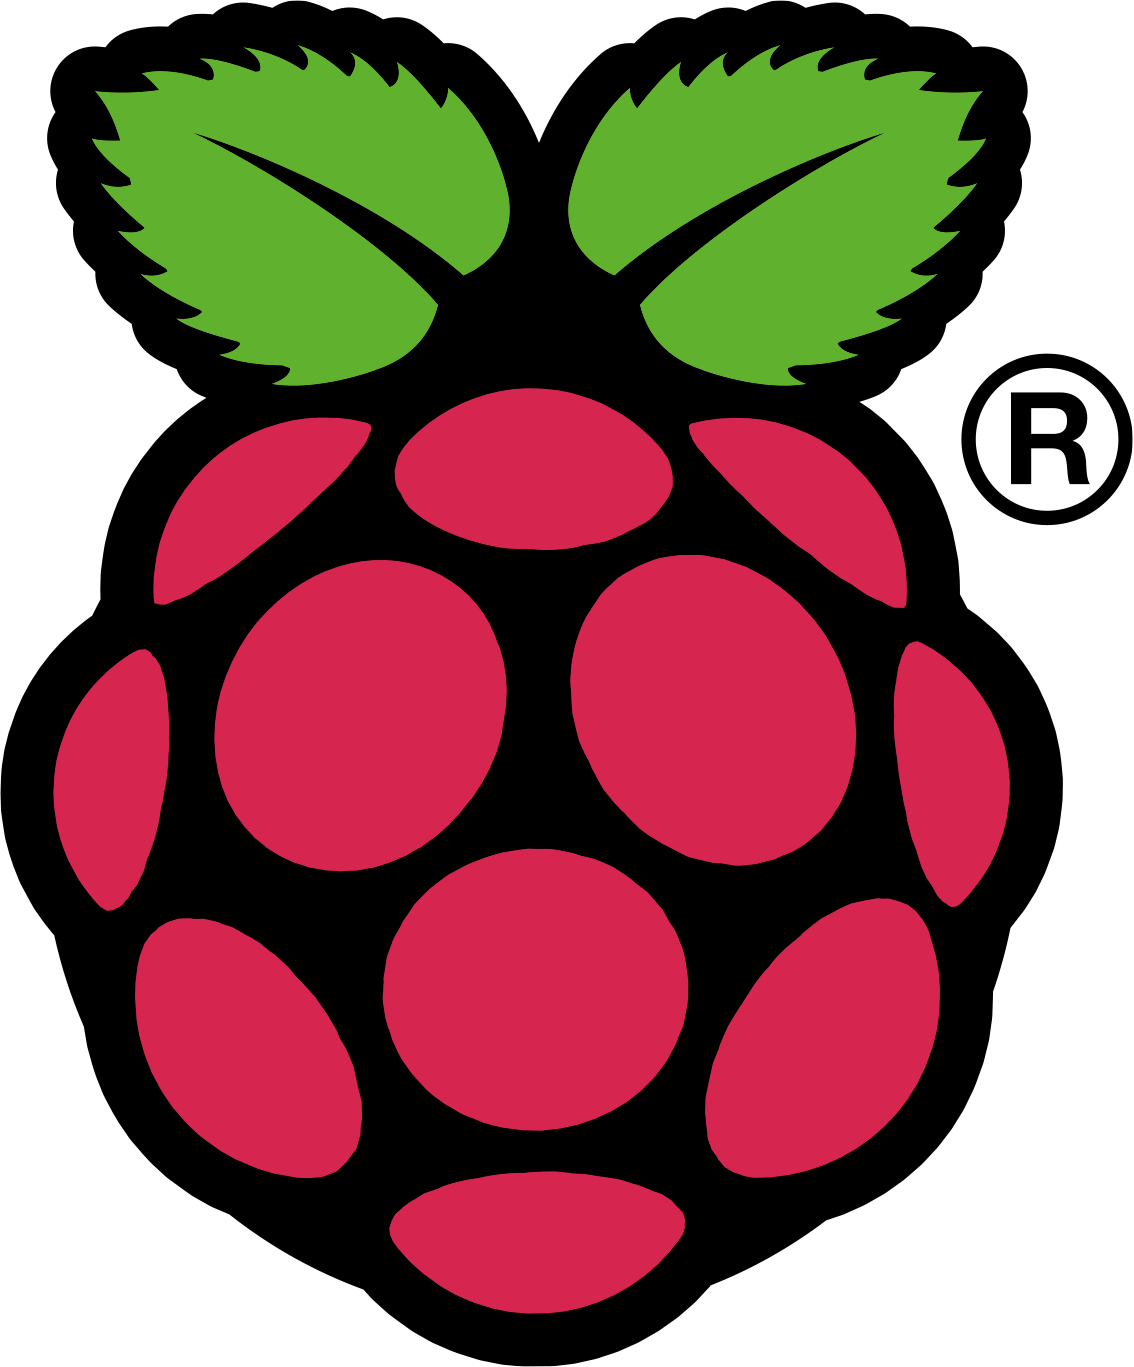 Raspberry Pi is a trademark of the Raspberry Pi Foundation